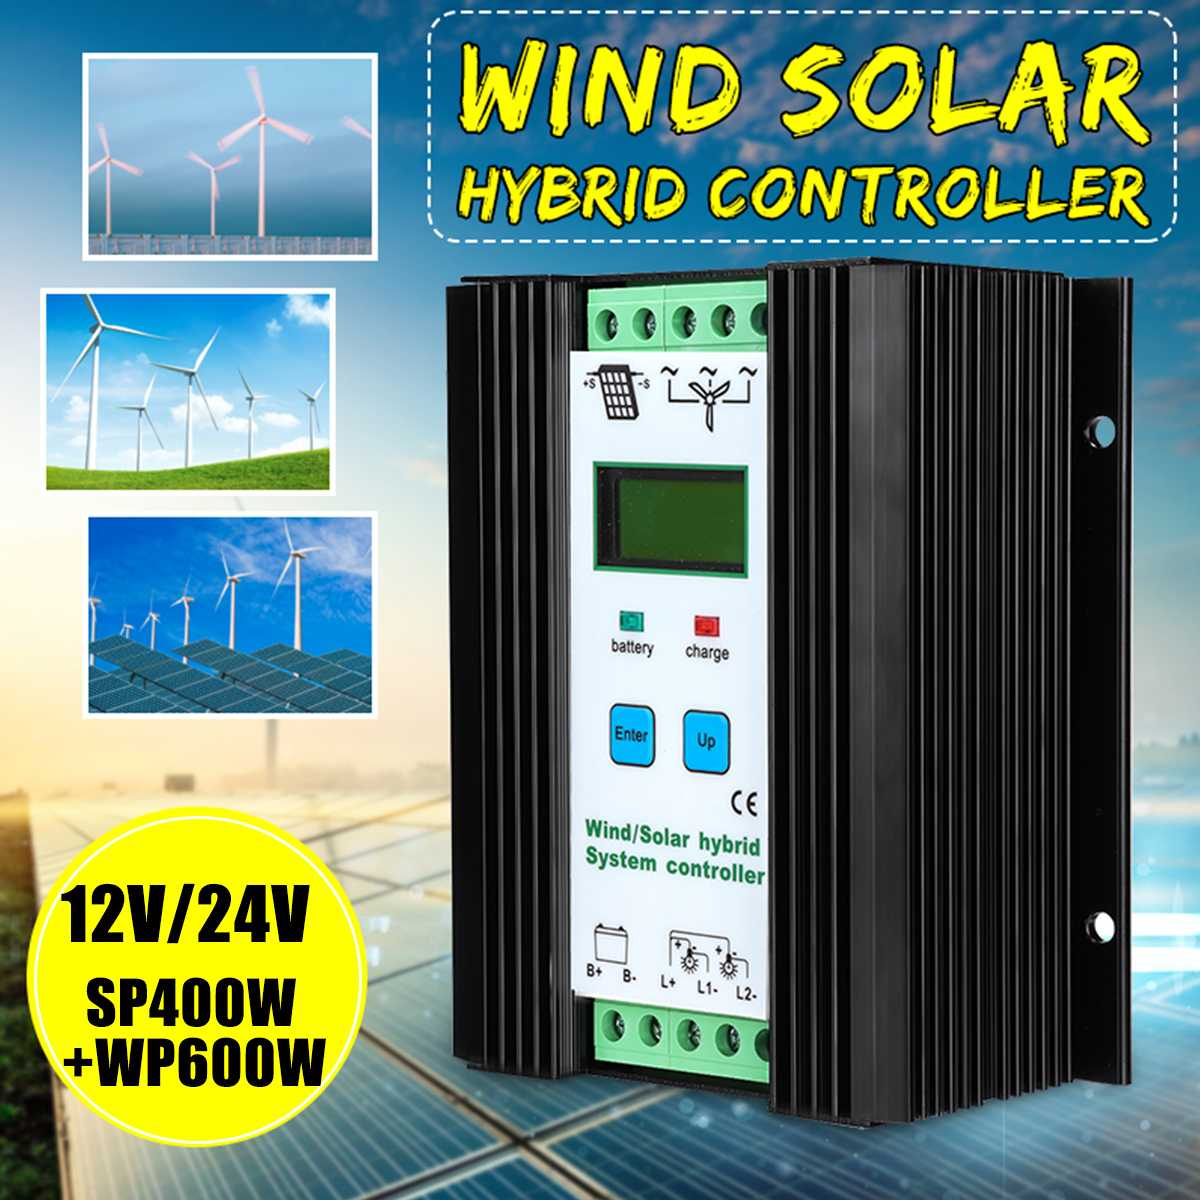 12V 24V 400W 600W Wind Solar Hybrid Charge Controller Photovoltaic Solar Street Light Wind Generator Controller Big LCD Display